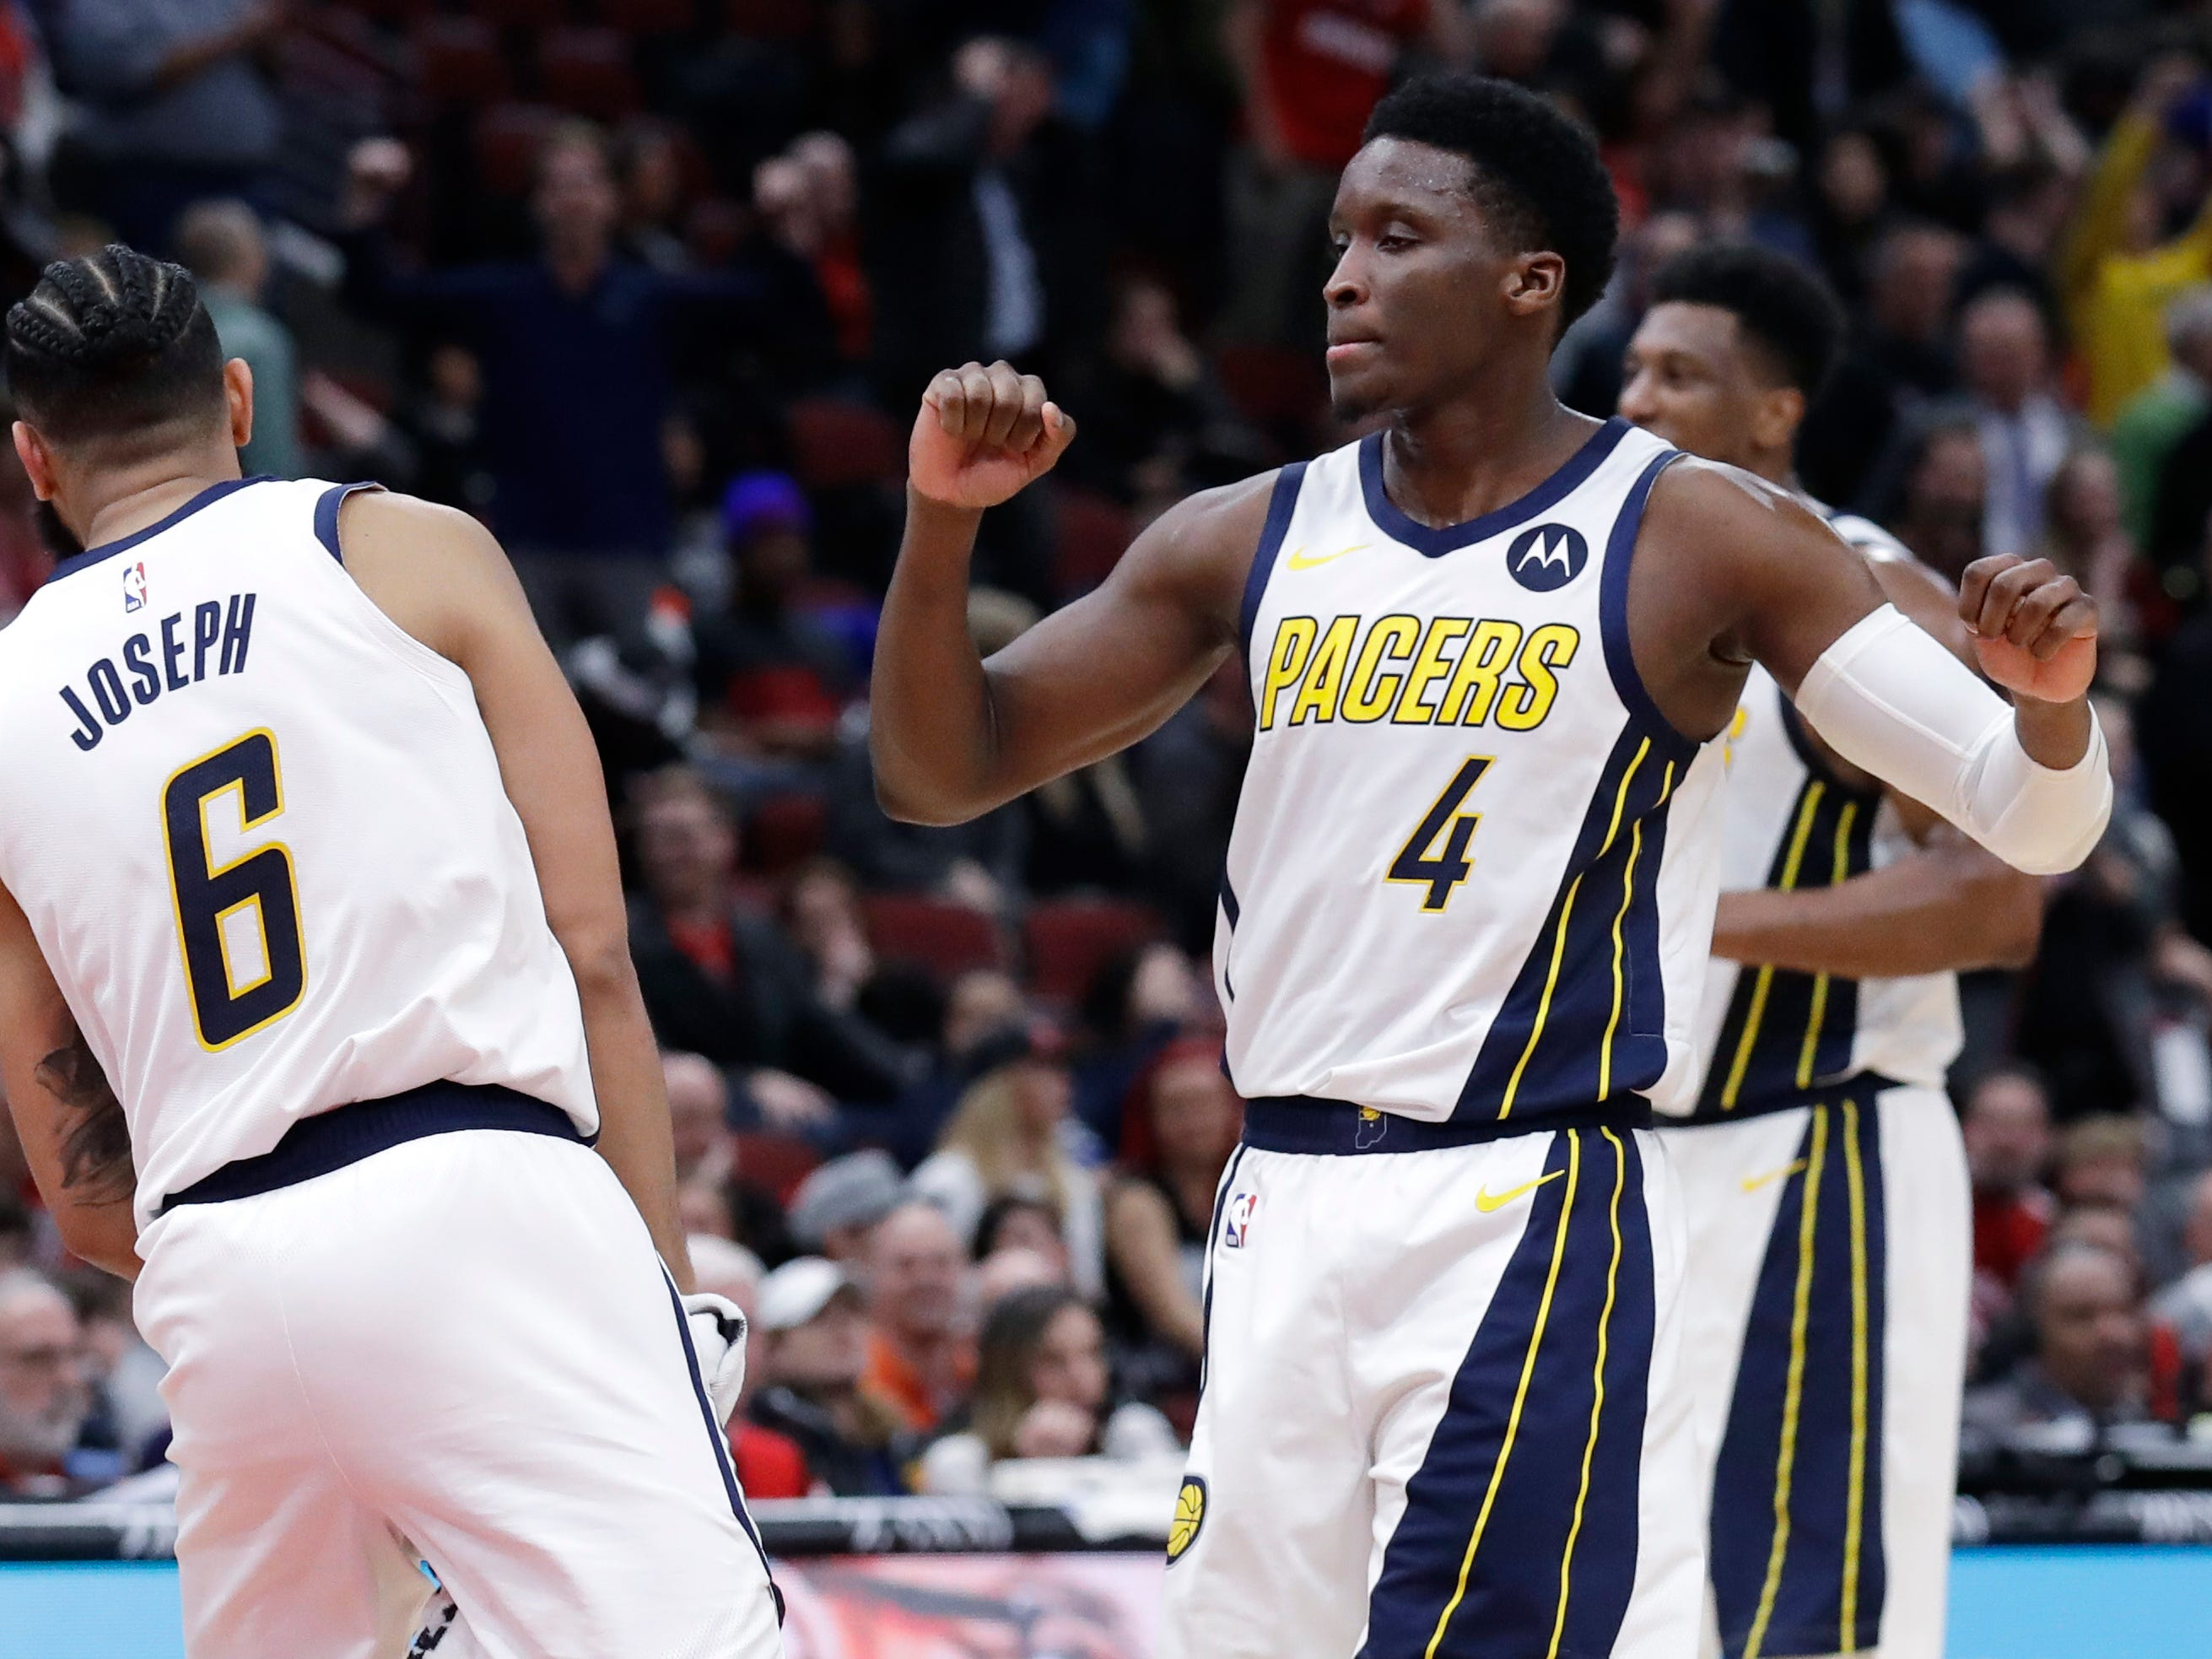 Indiana Pacers guard Victor Oladipo, right, celebrates with guard Cory Joseph after making a three-point basket against the Chicago Bulls during overtime of an NBA basketball game Friday, Jan. 4, 2019, in Chicago. (AP Photo/Nam Y. Huh)